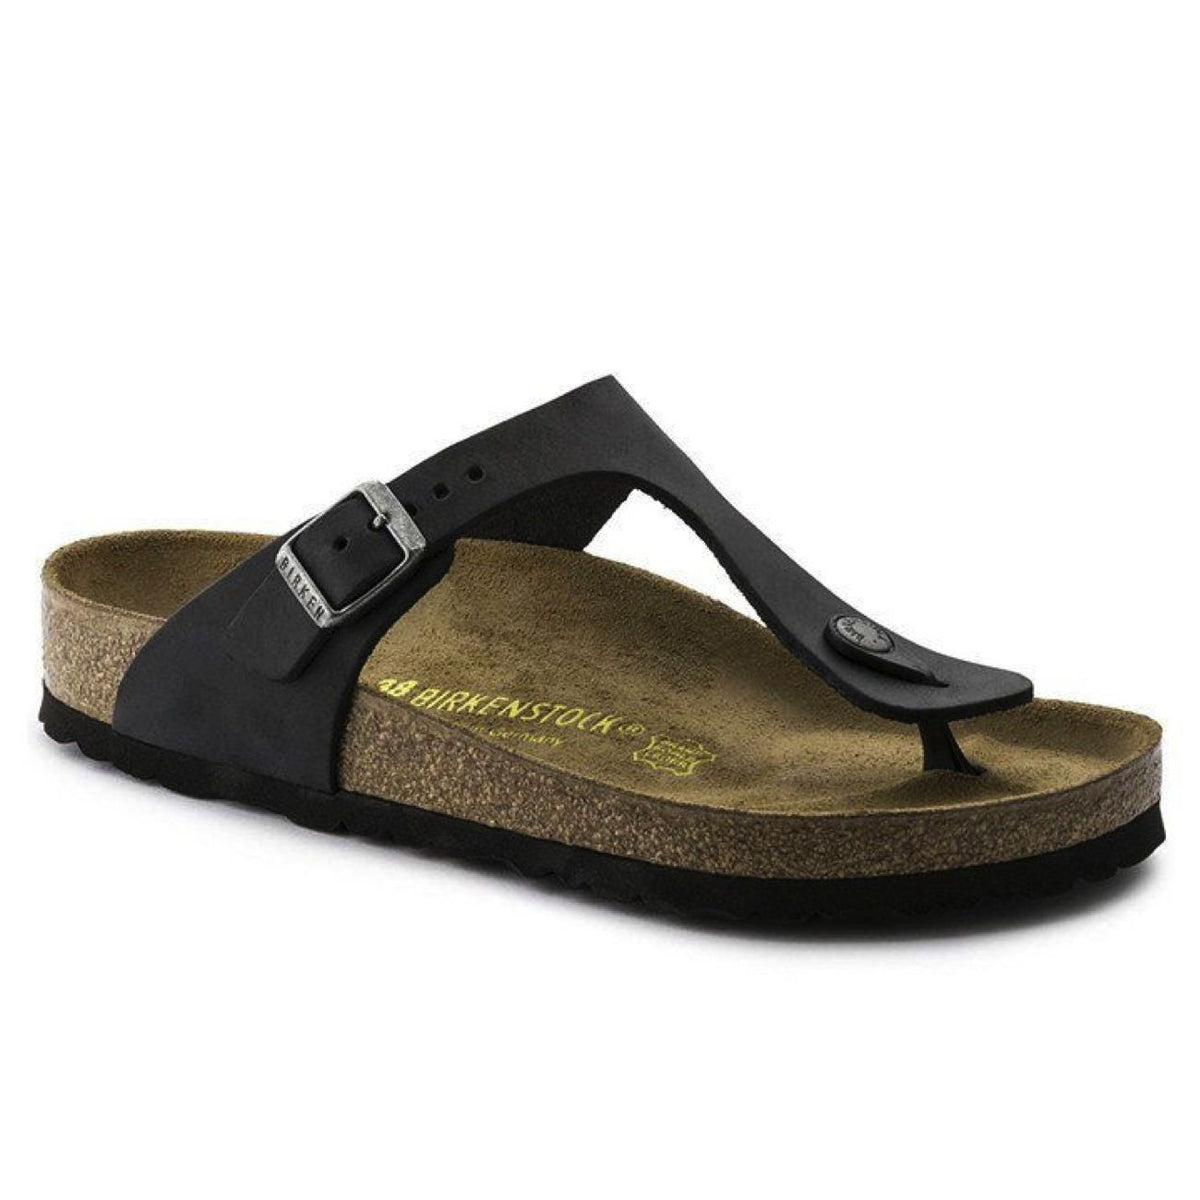 Birkenstock Seasonal, Gizeh, Oiled Leather, Regular Fit, Black Sandals Birkenstock Seasonal Black 35